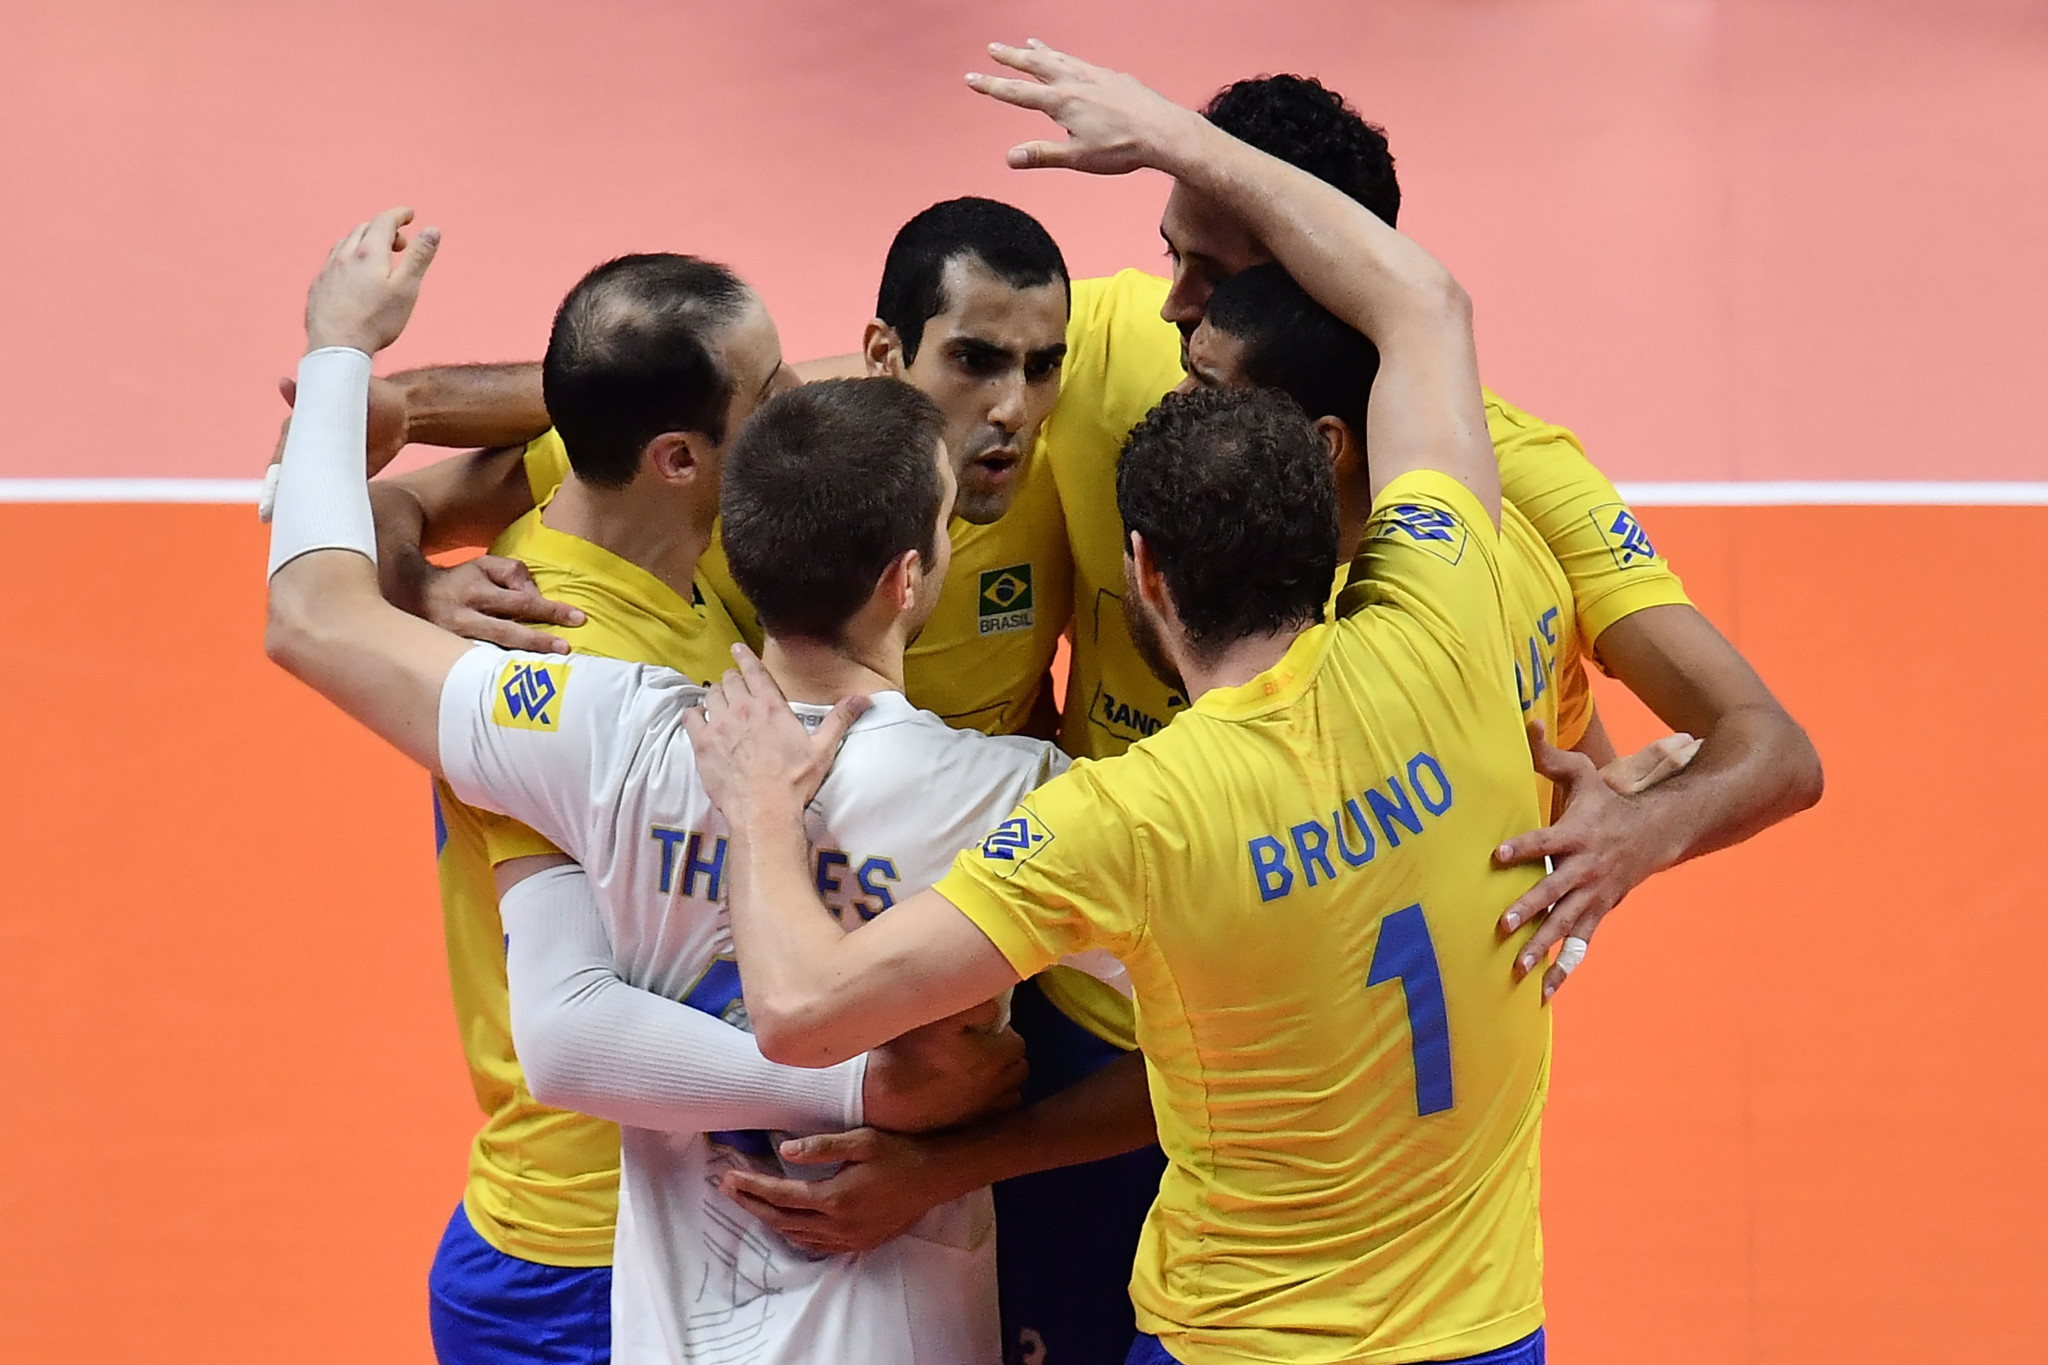 Brazil and Poland through to Volleyball Men's Nations League final